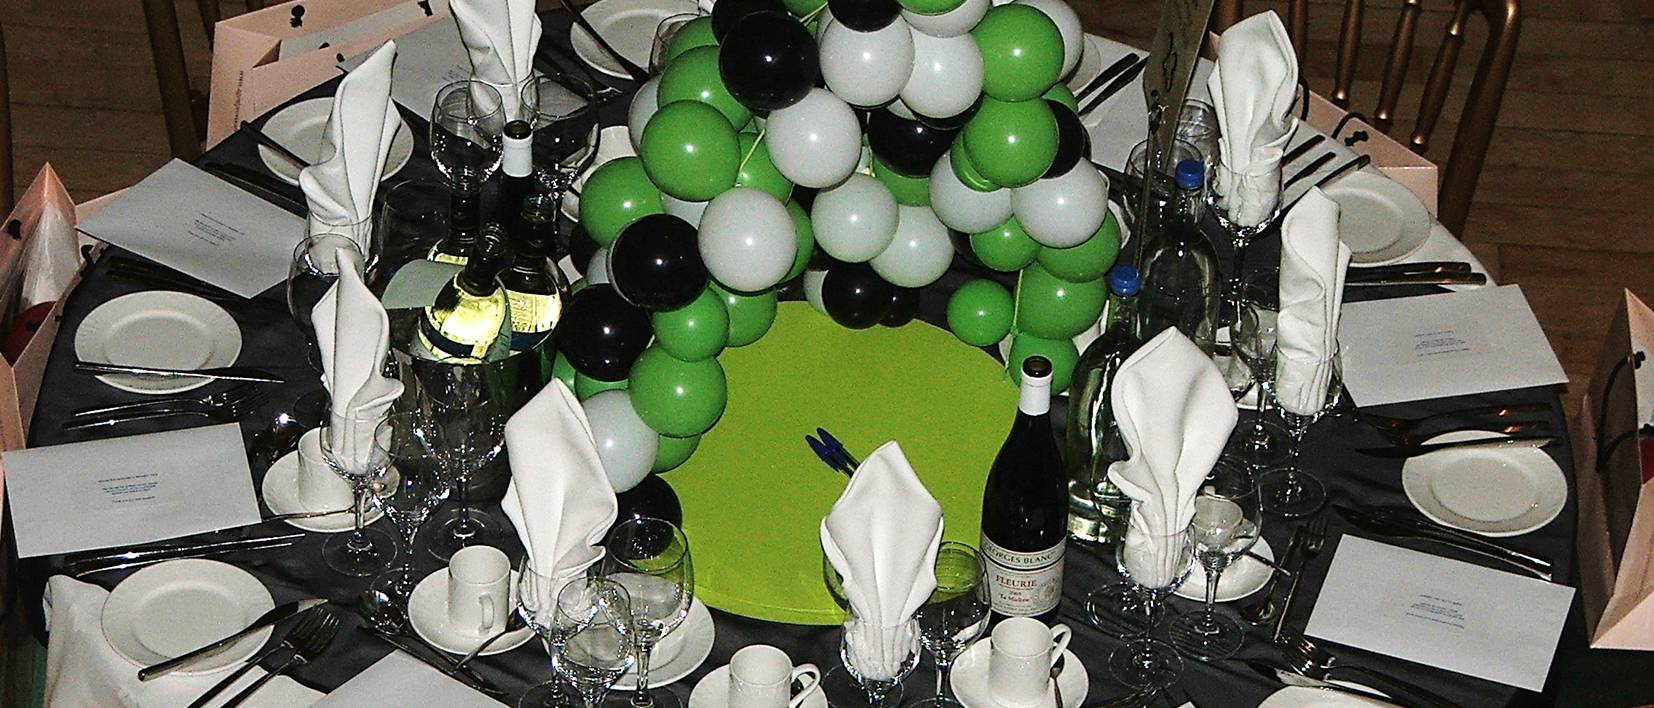 dinner table, balloons, wine, glasses plates, cutlery